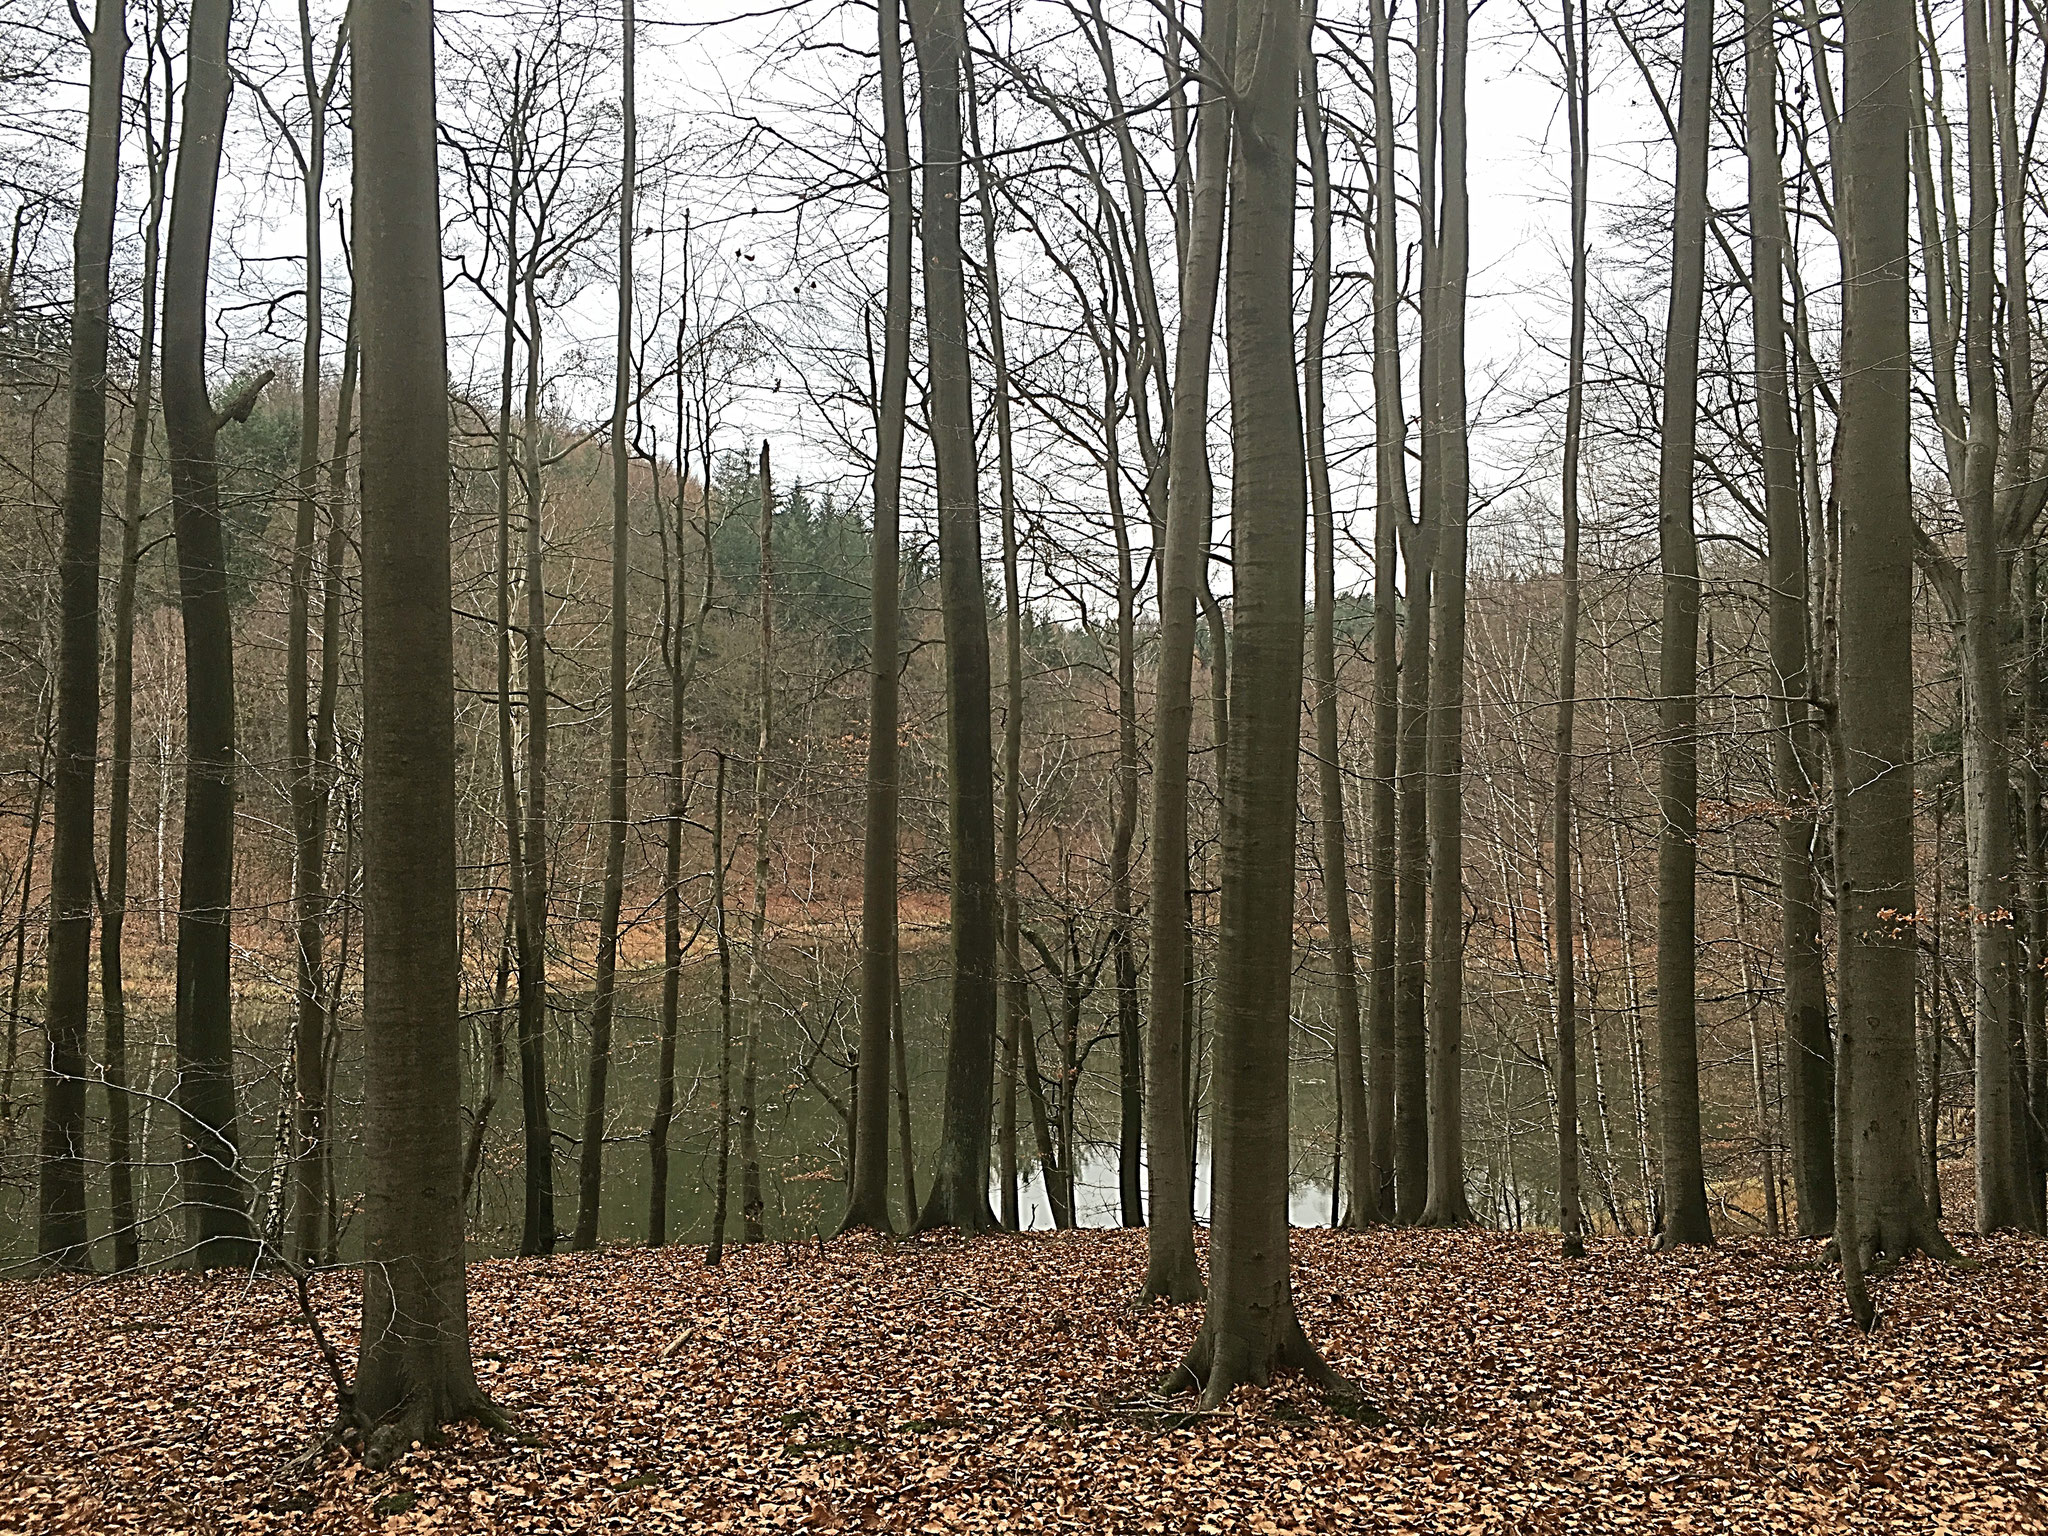 Laubwald im Winter